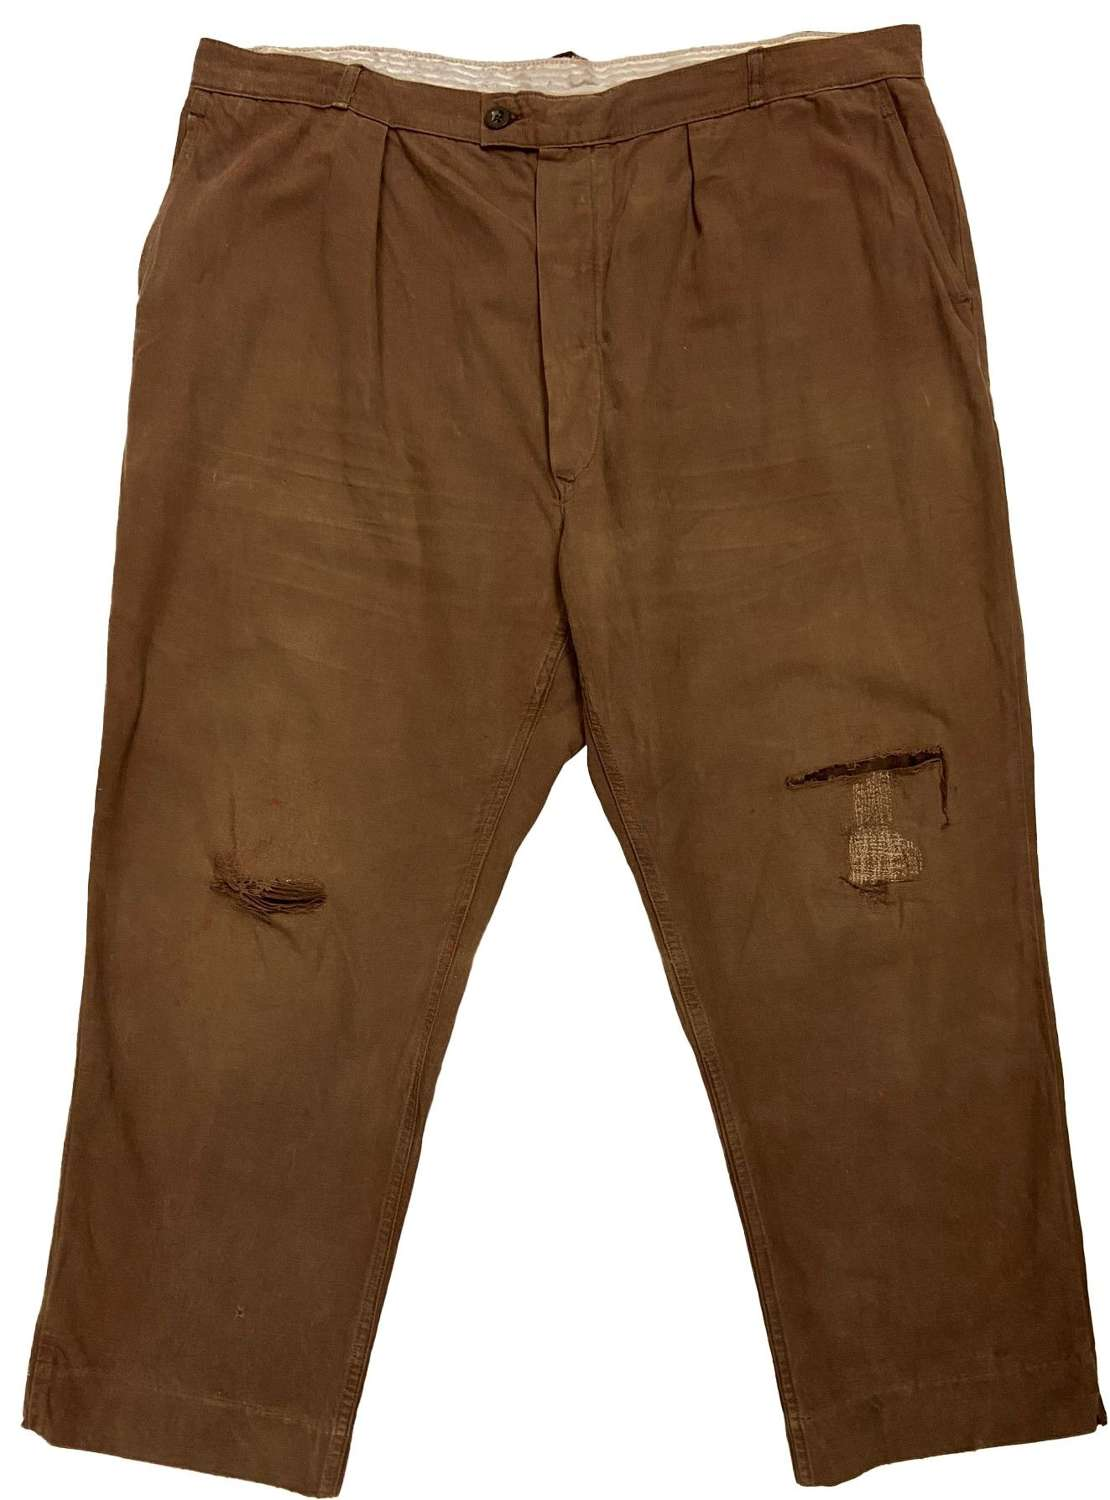 Original 1960s Brown French Workwear Trousers